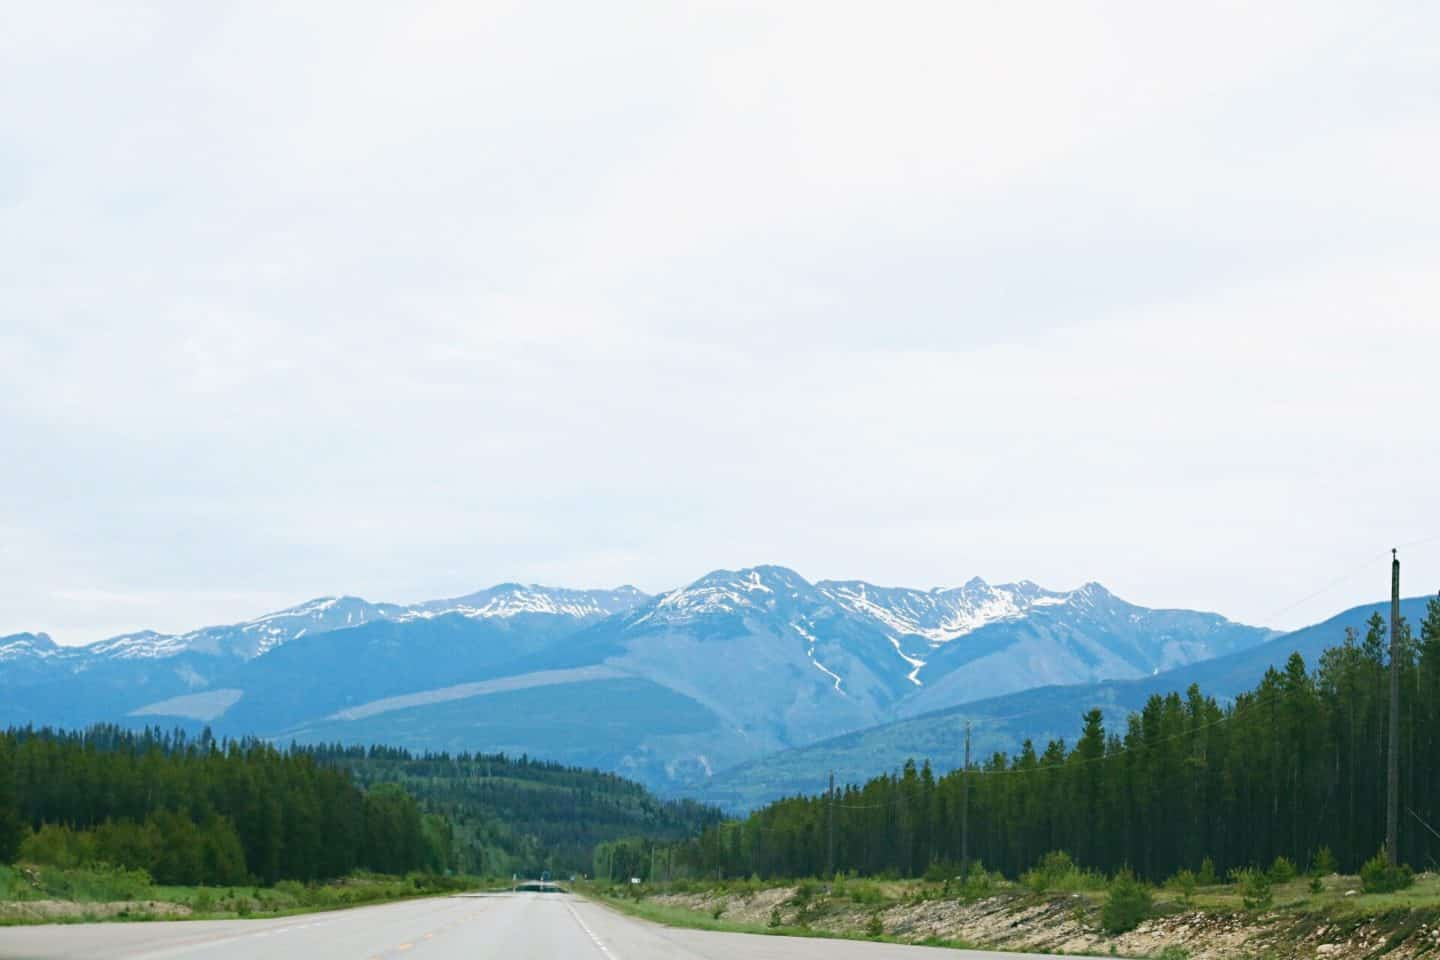 Driving along Icefields Parkway in Banff, Alberta